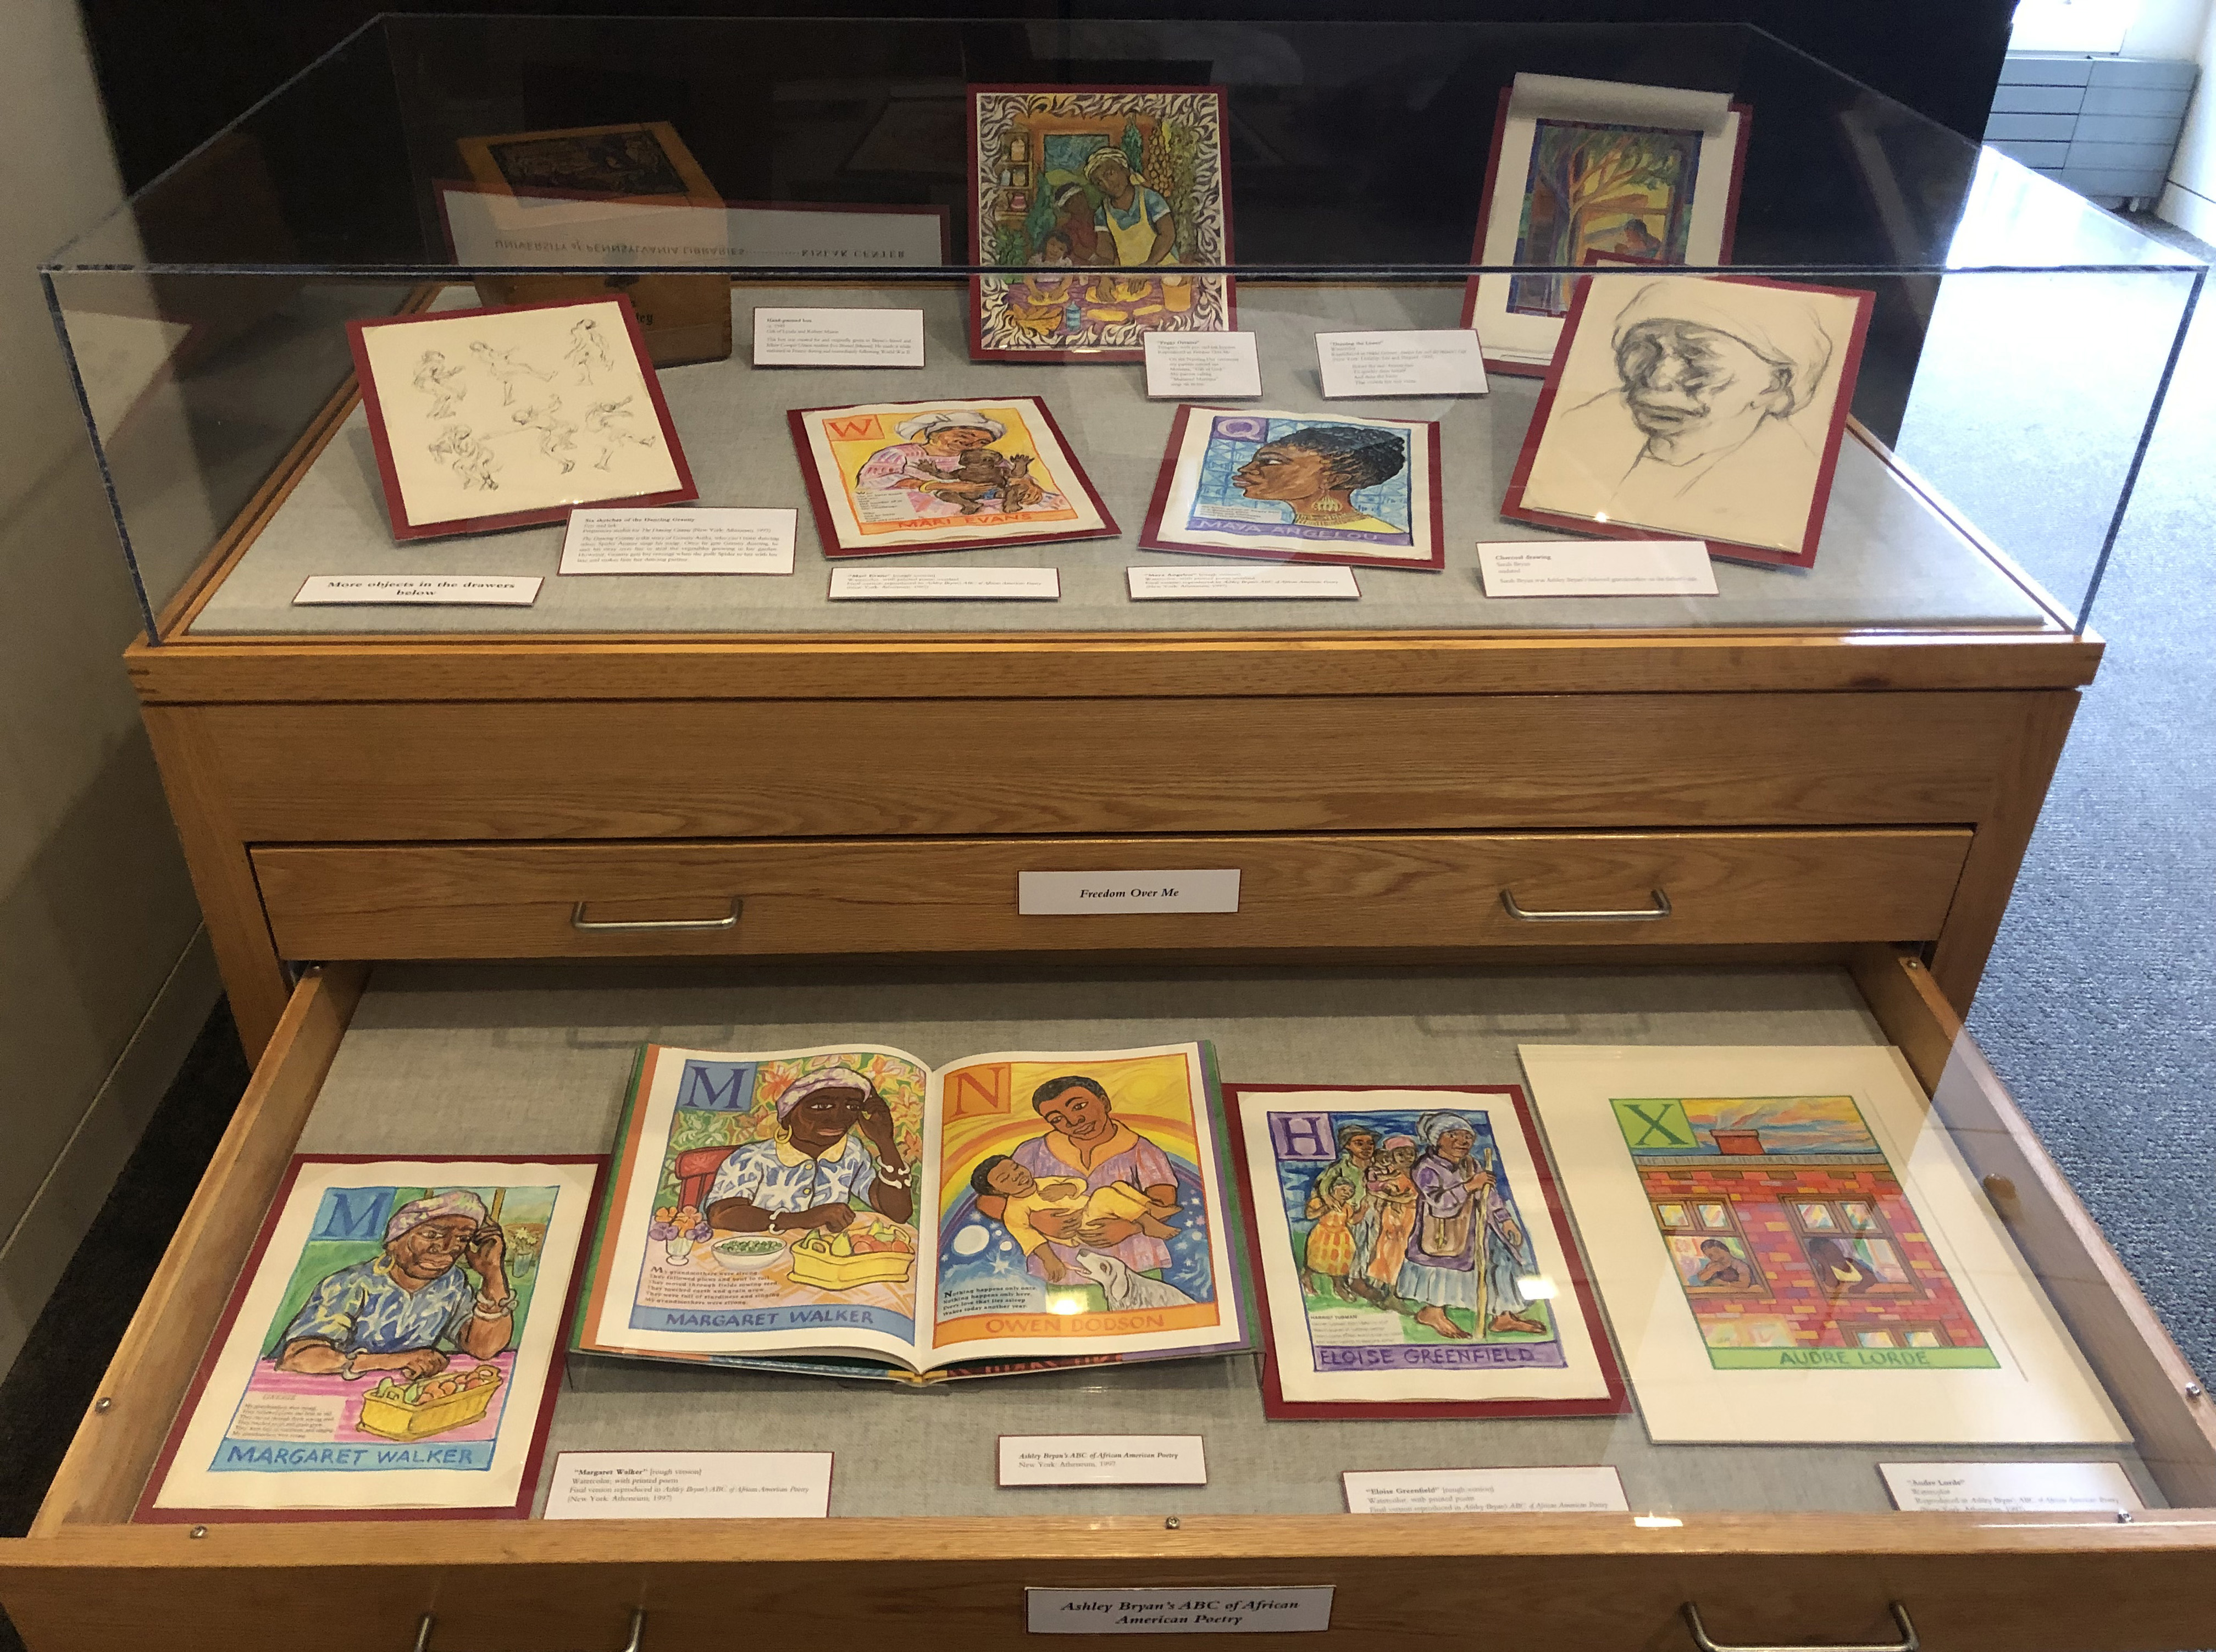 Remarkable Figures, Drawer 2 - Ashley Bryan's ABC's of African American Poetry